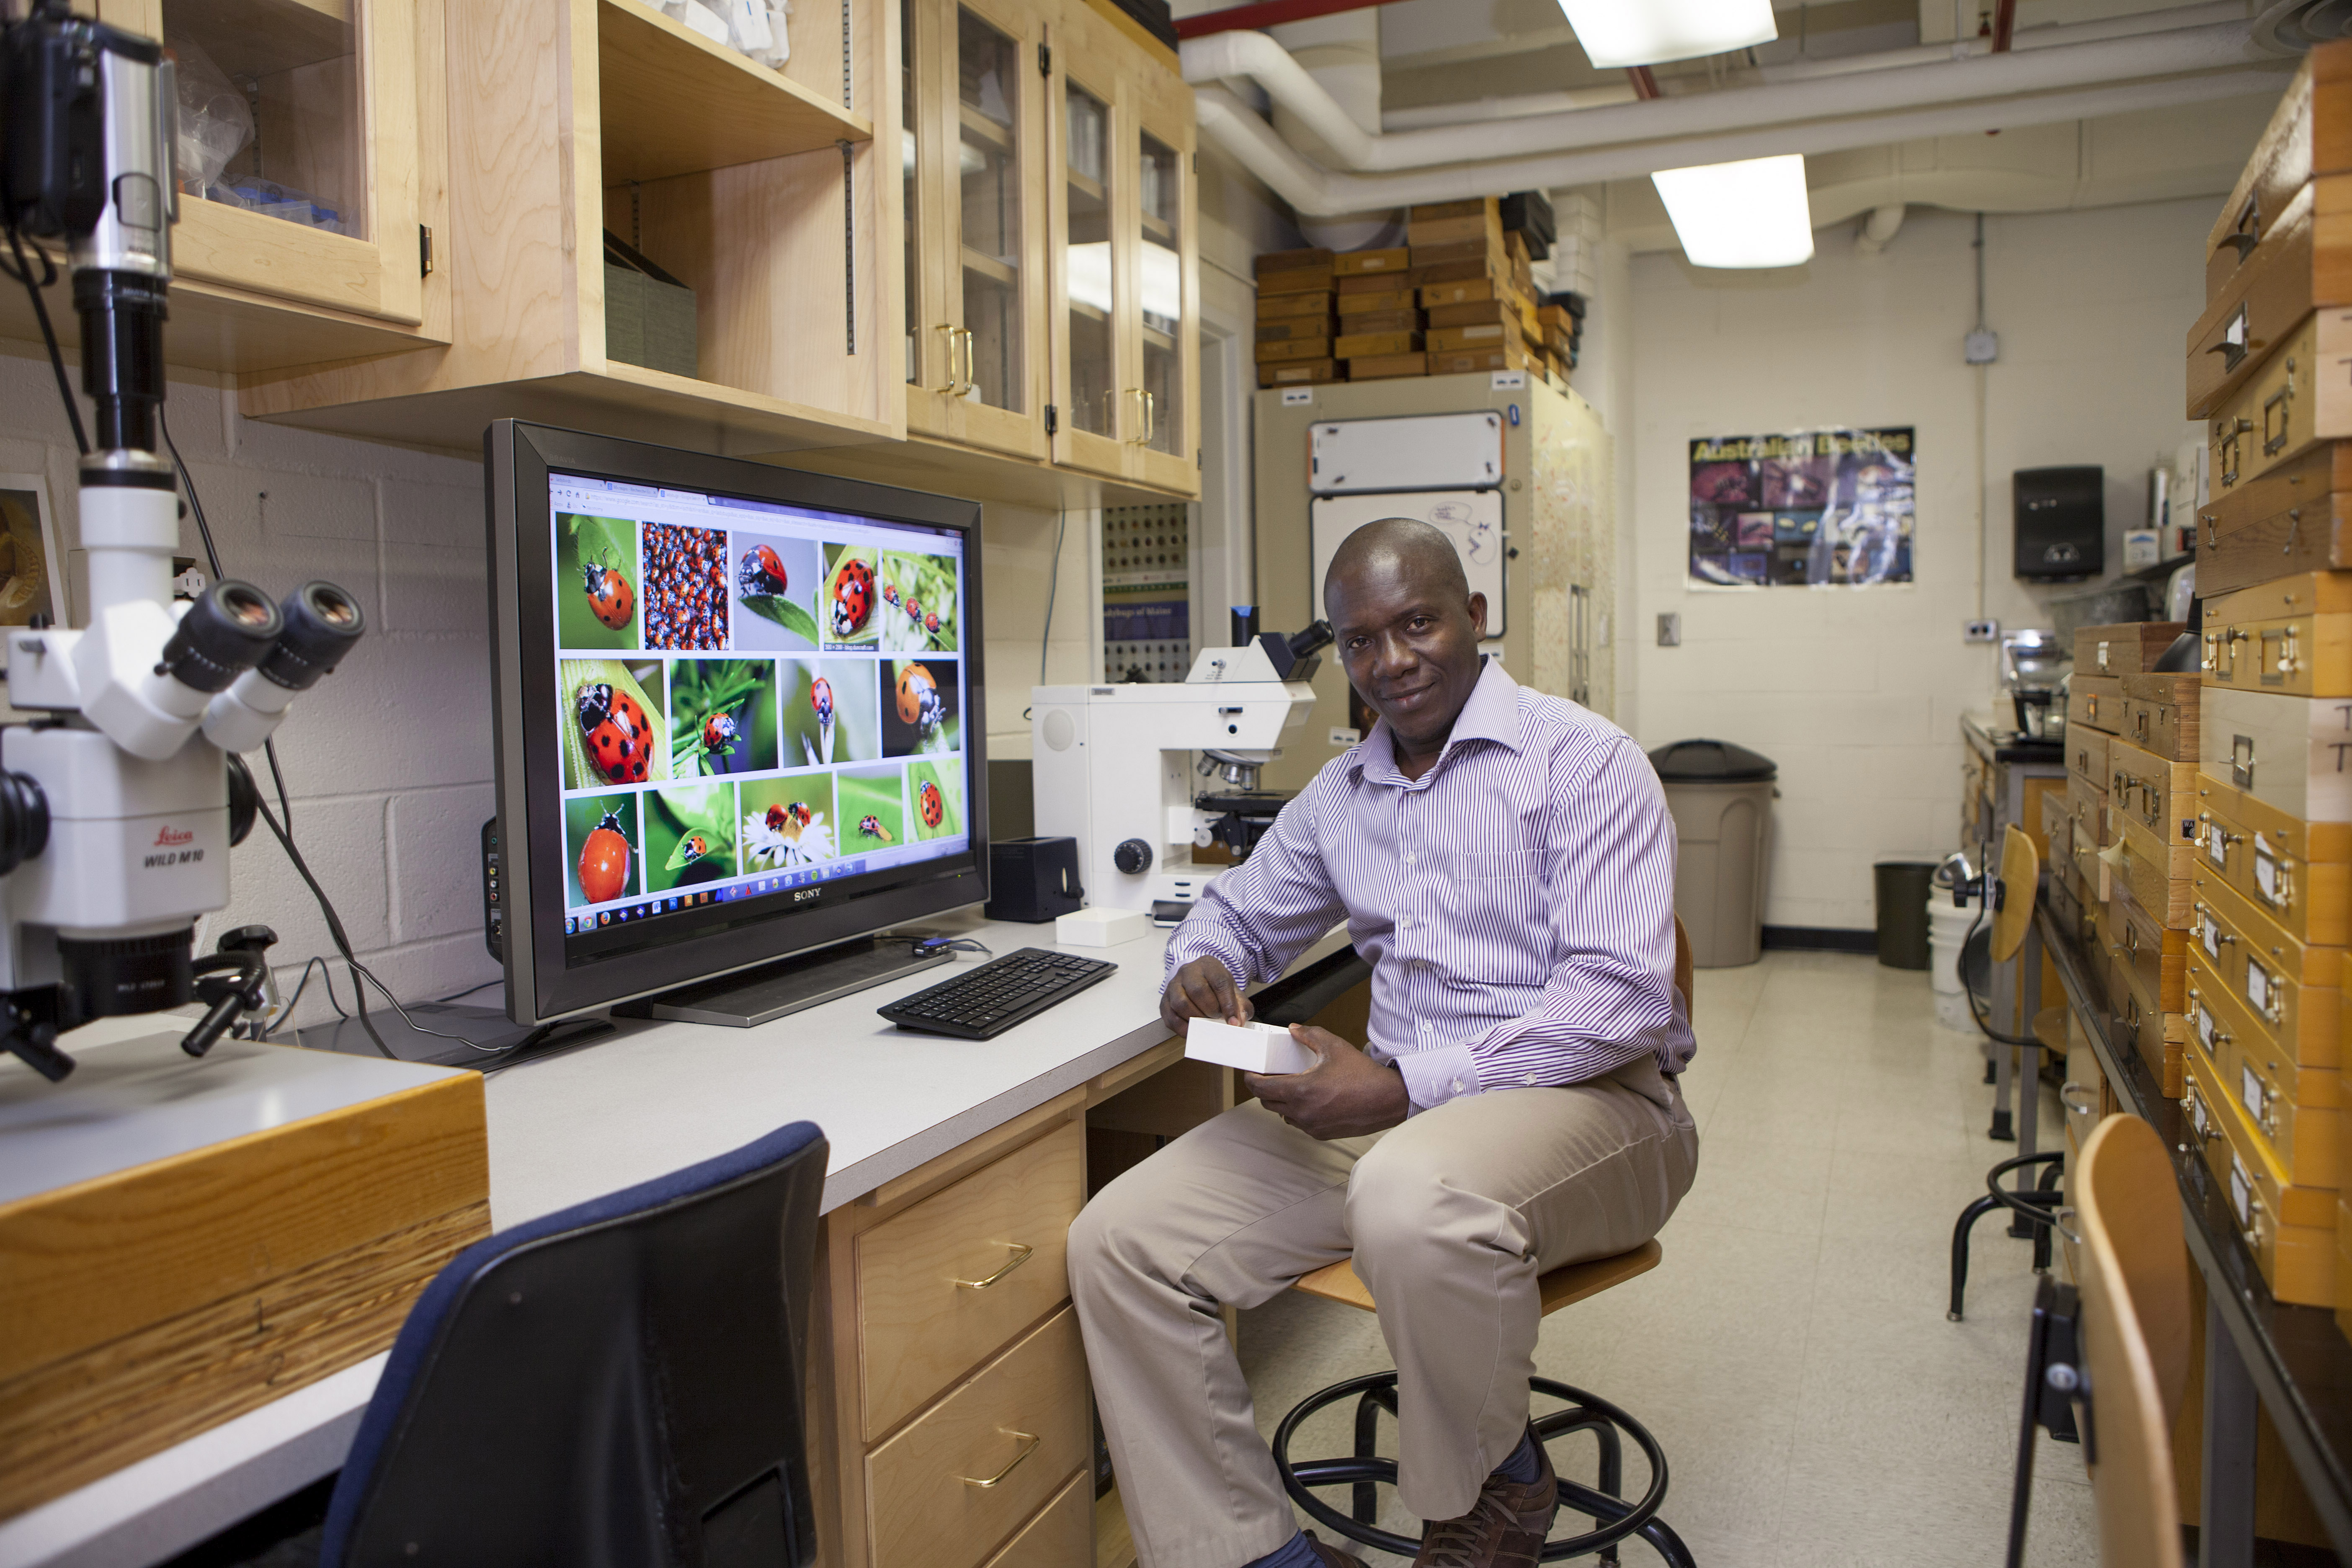 Brad Hounkpati, a doctoral candidate in entomology at the UGA College of Agricultural and Environmental Sciences (CAES), established a replacement reference specimen for an important lady beetle species found in South Africa. His work was published in the March 2019 edition of the taxonomic journal Zootaxa.